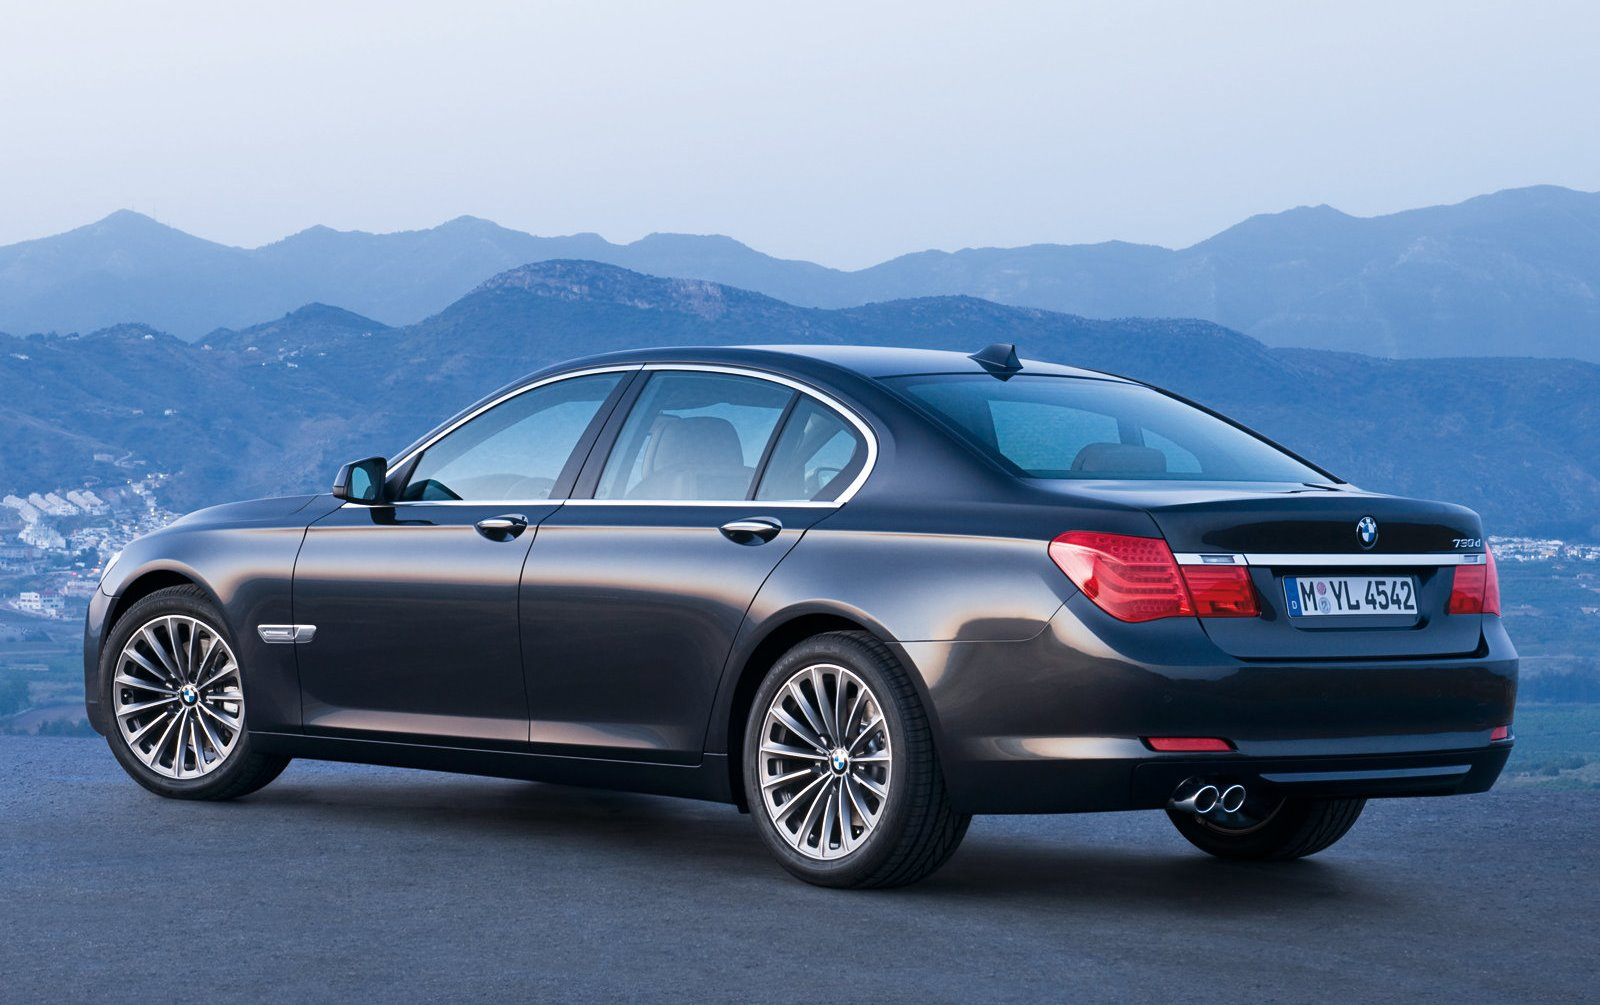 bmw 7 series 760li in pakistan, 7 series bmw 7 series 760li price